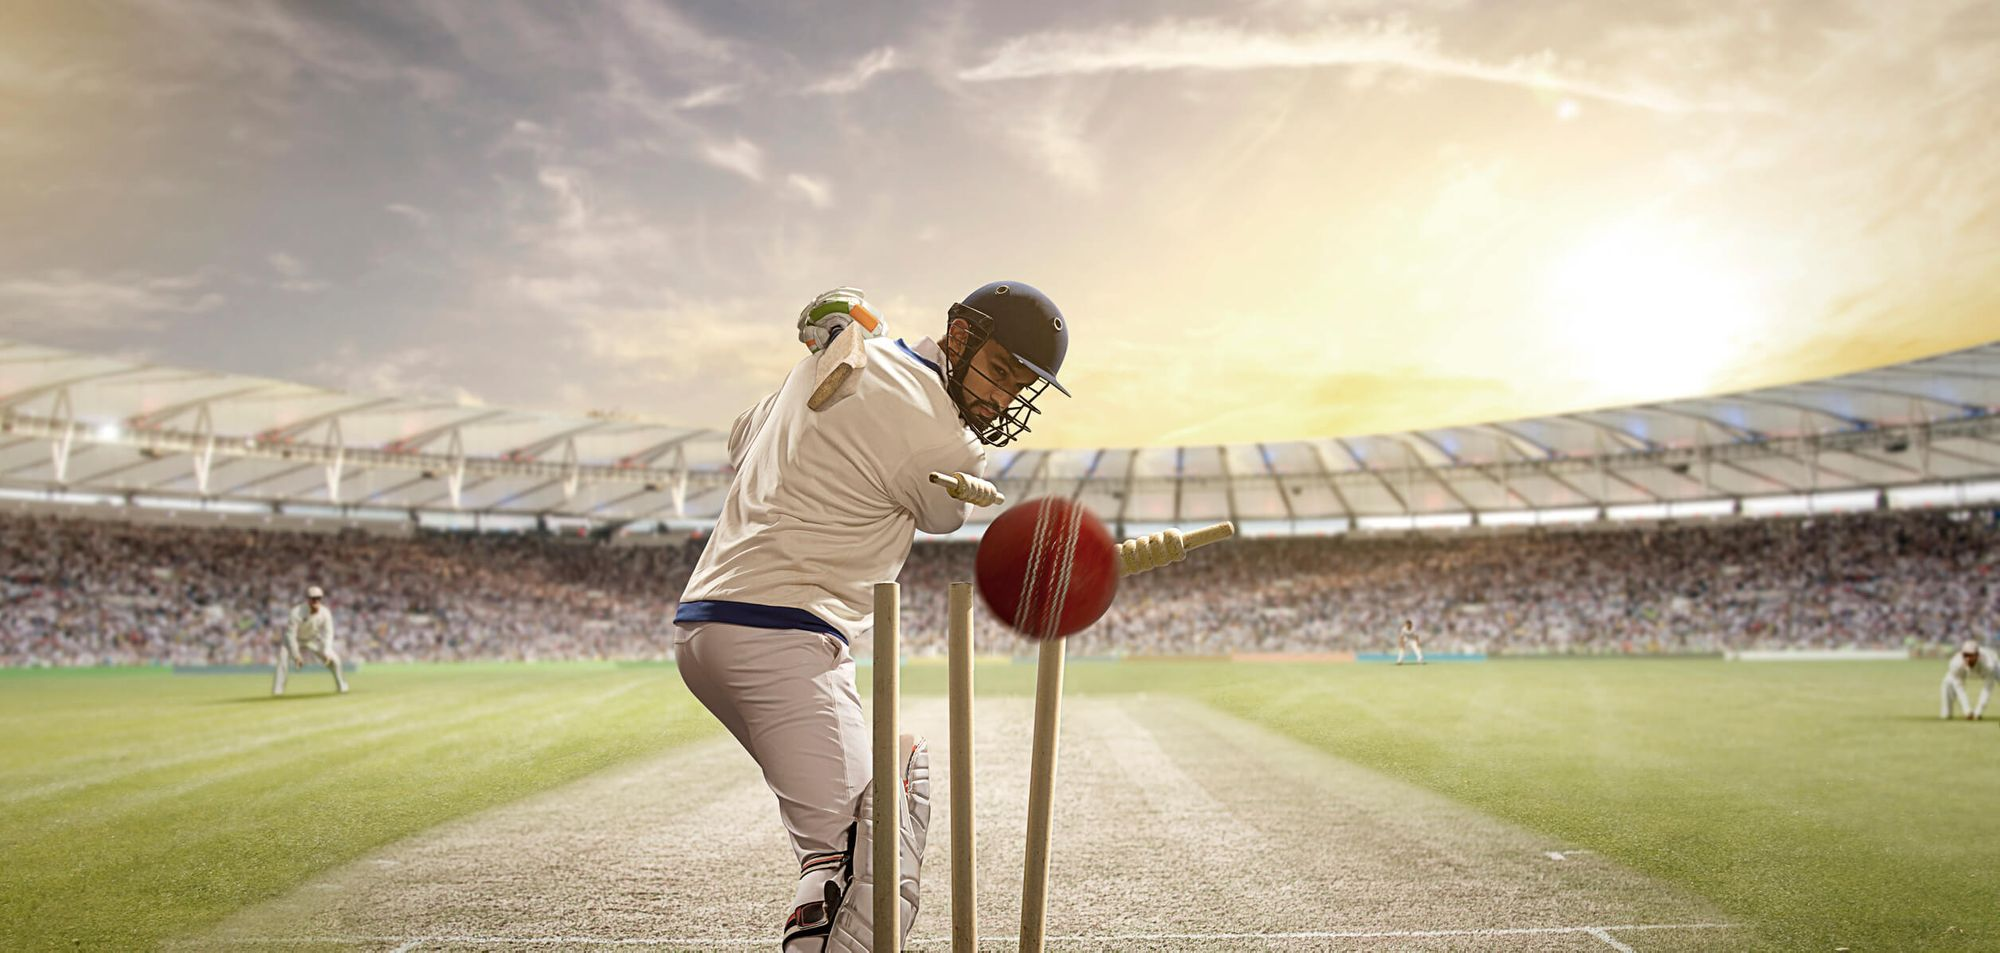 We take a look at the best ads that lit up this year's IPL